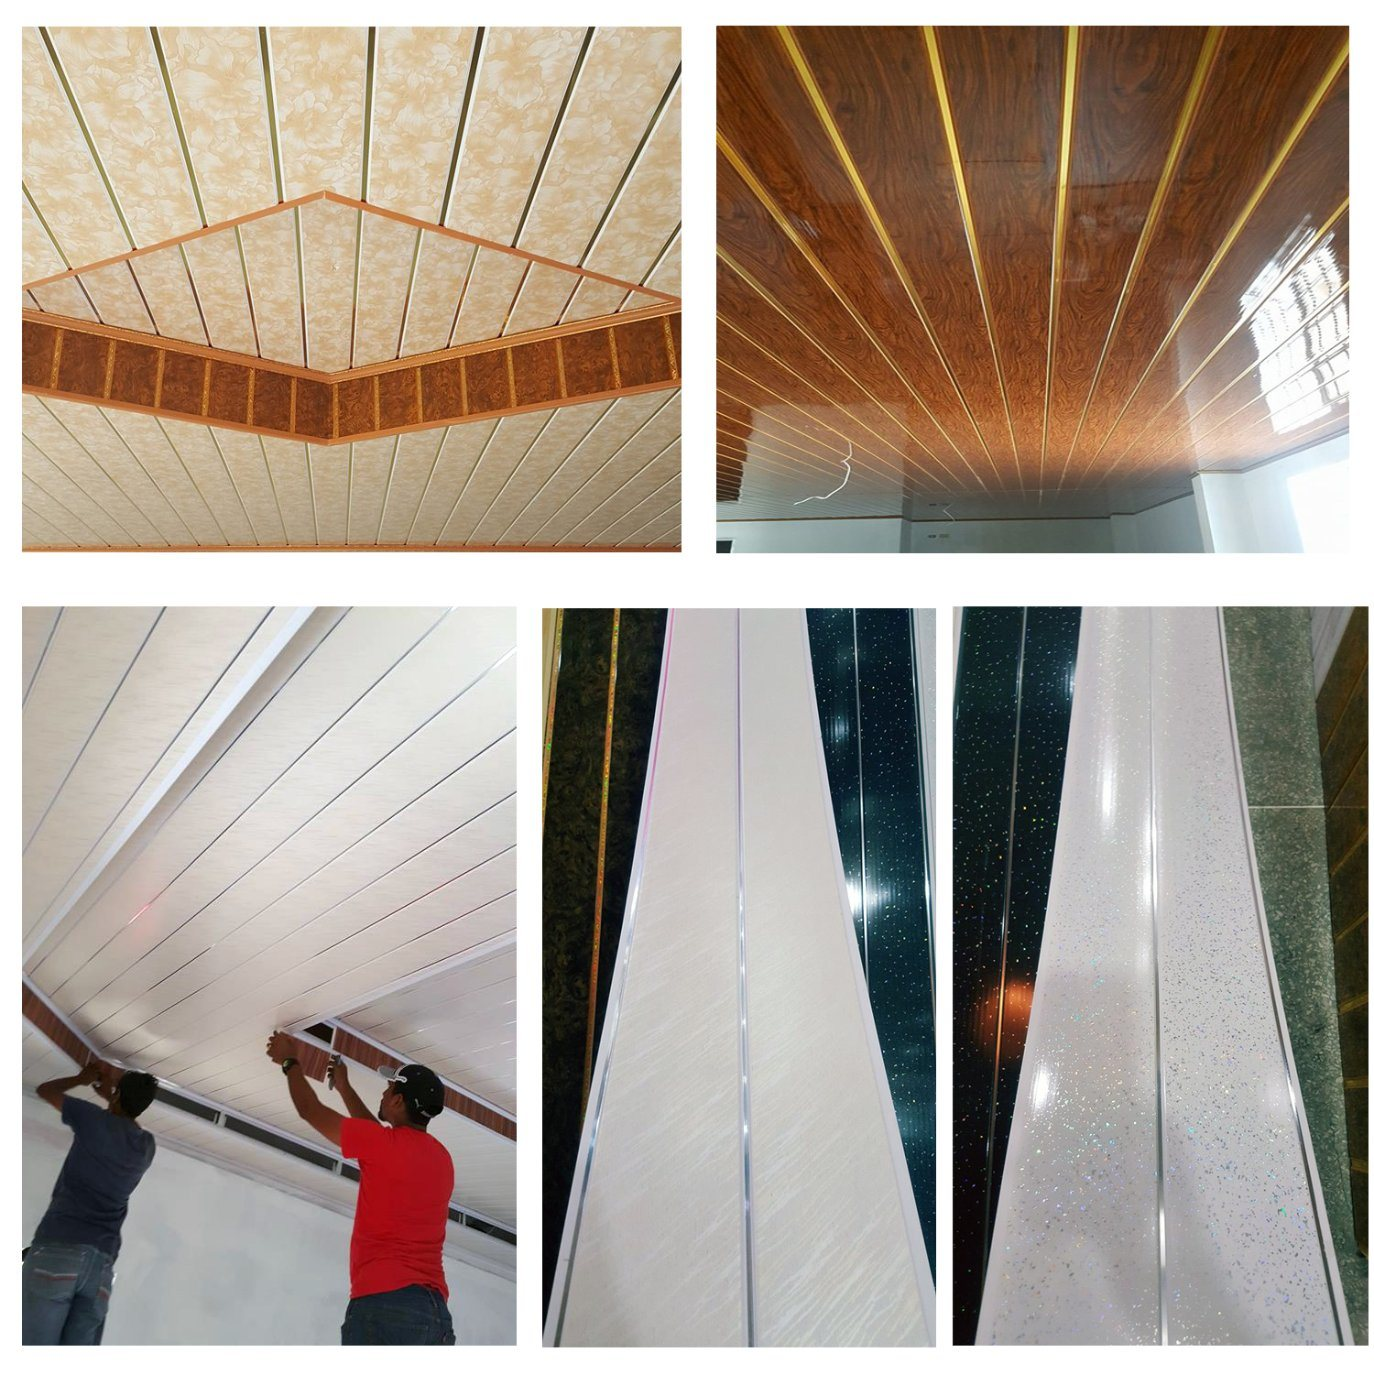 False Suspended Gypsum Decorative Wall Acoustic Waterproof Design Stretch Baffle Great Fireproof Roof Pvc Panel Suspended Ceiling Plastic China Pvc Ceiling False Ceiling Made In China Com